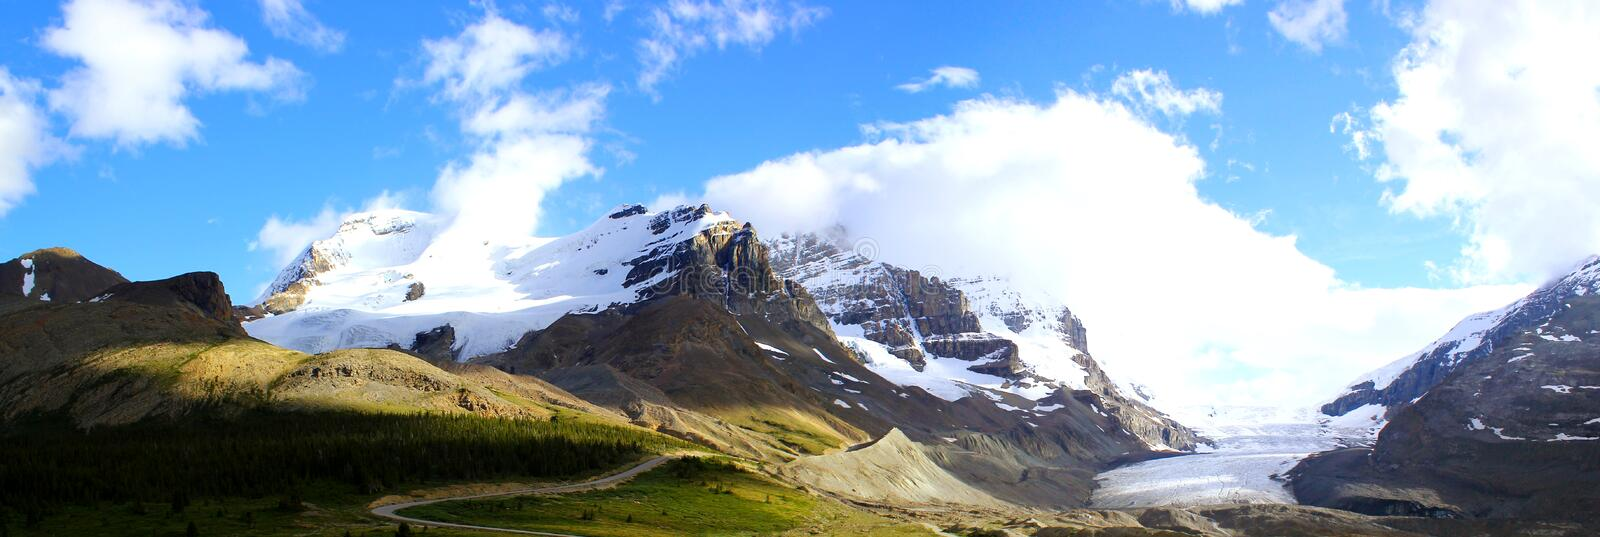 Beautiful mountain landscape at Athabasca Galcier / Columbia Icefield in Alberta / British Columbia - Canada royalty free stock photo